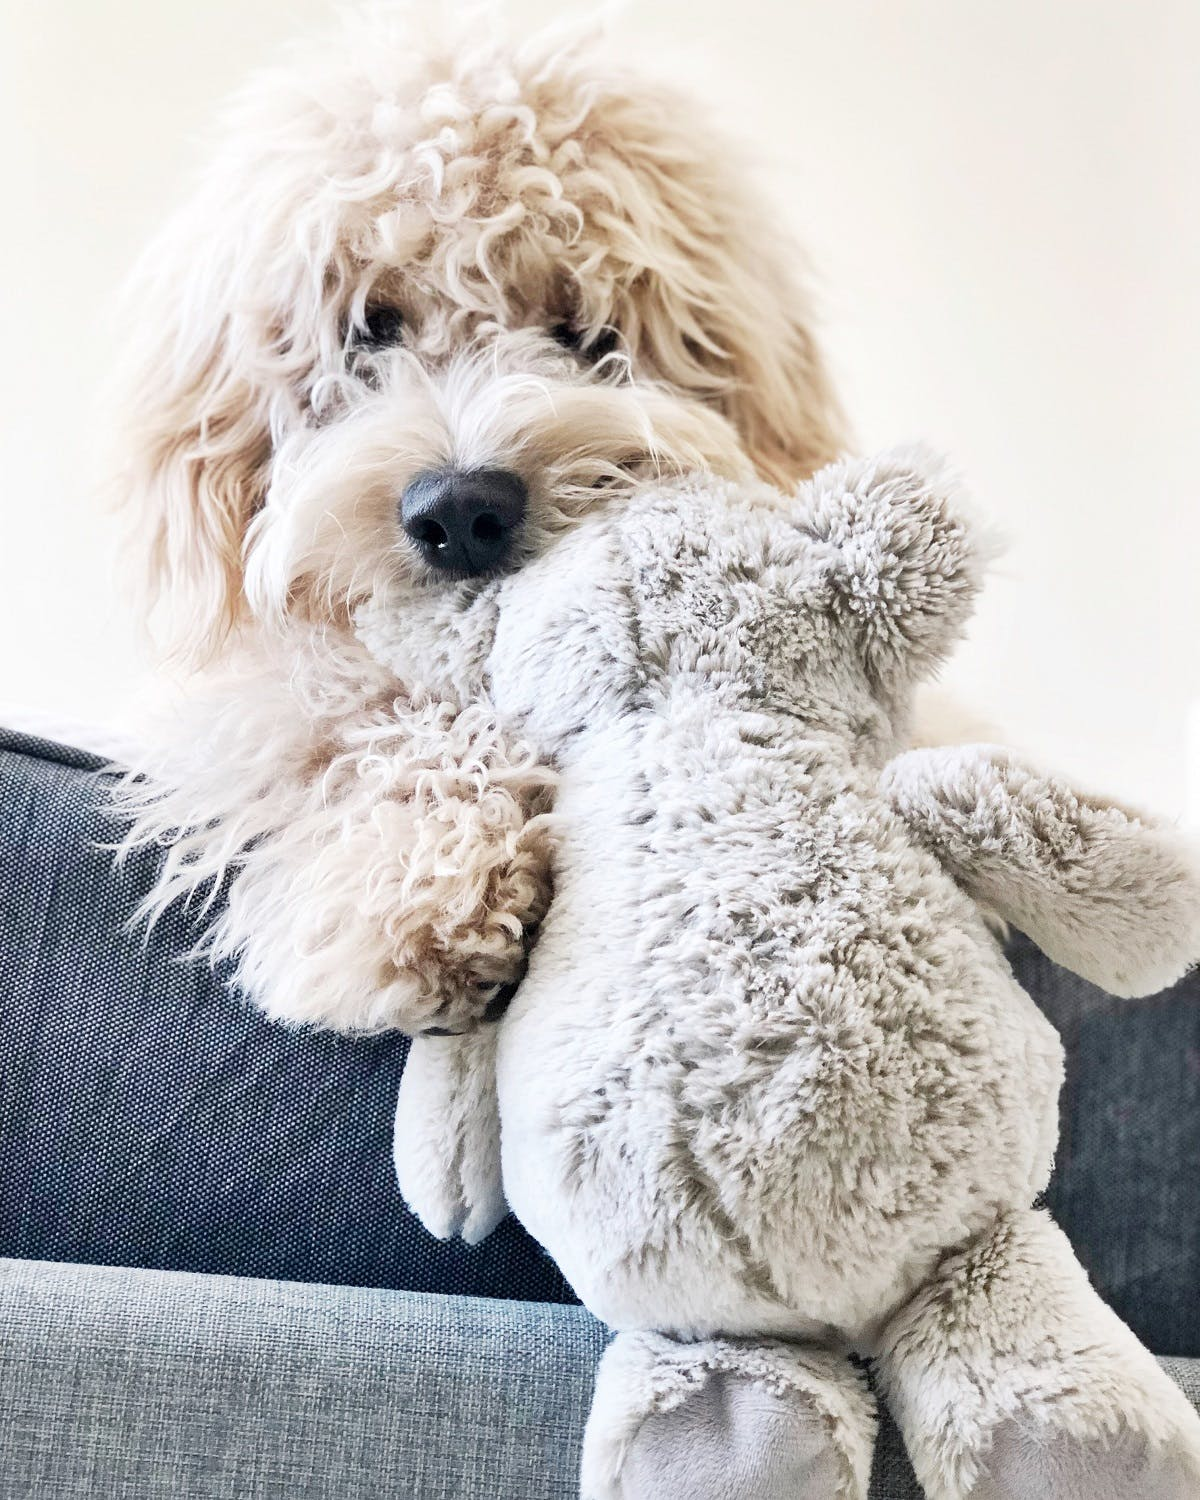 Dog with curly mop fur holds a stuffed bear in her mouth